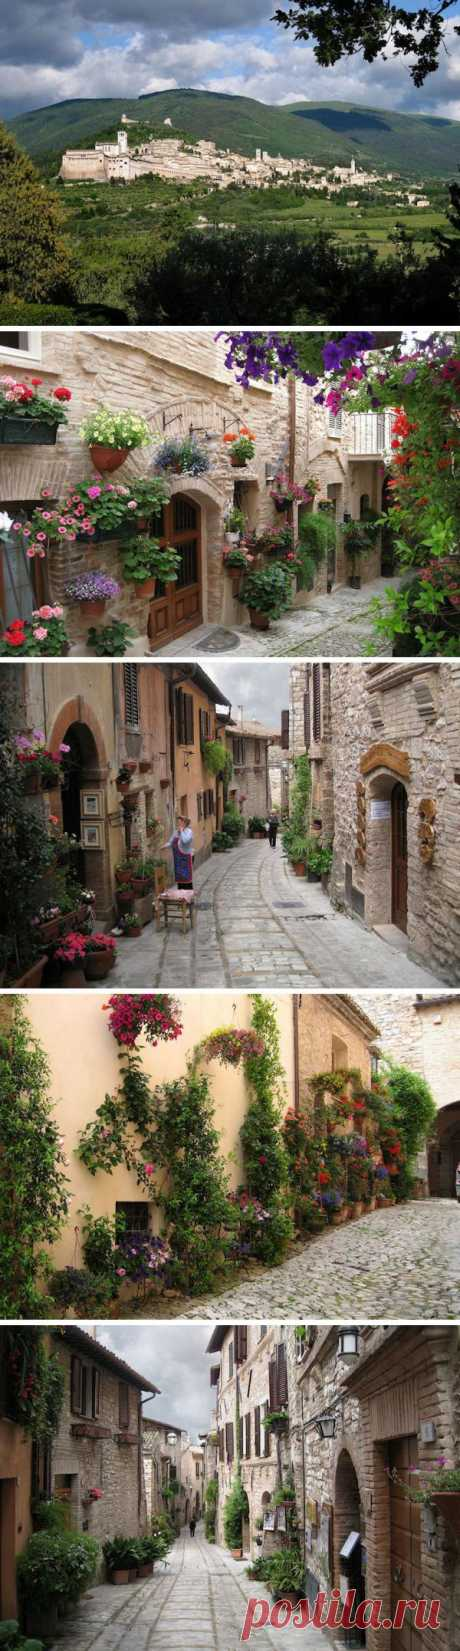 The old blossoming streets of the beautiful small town of Spello, Italy